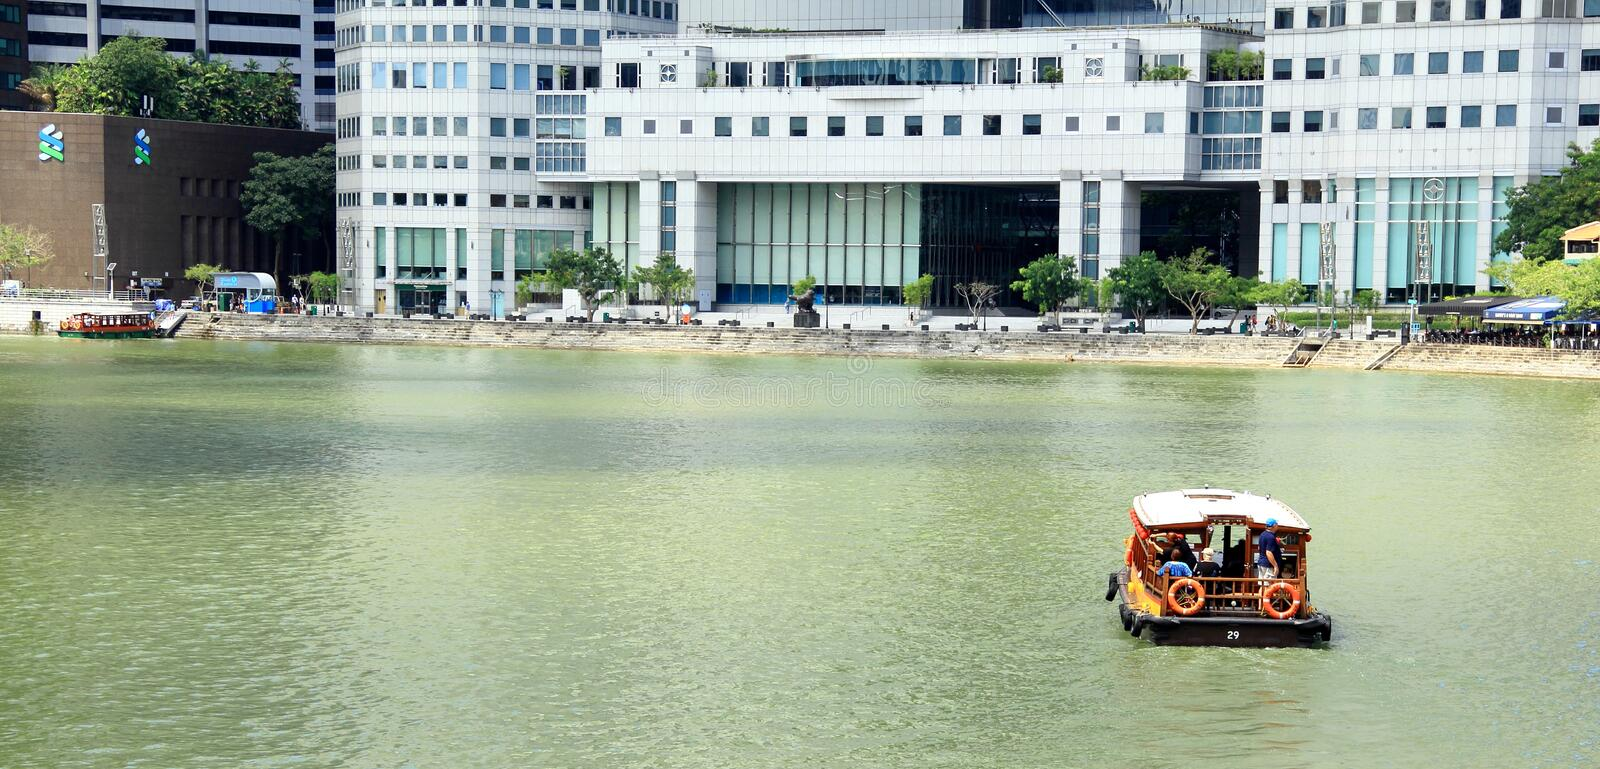 Download A Boat Is Navigating The Singapore River Editorial Photo - Image of bars, clouds: 32192231